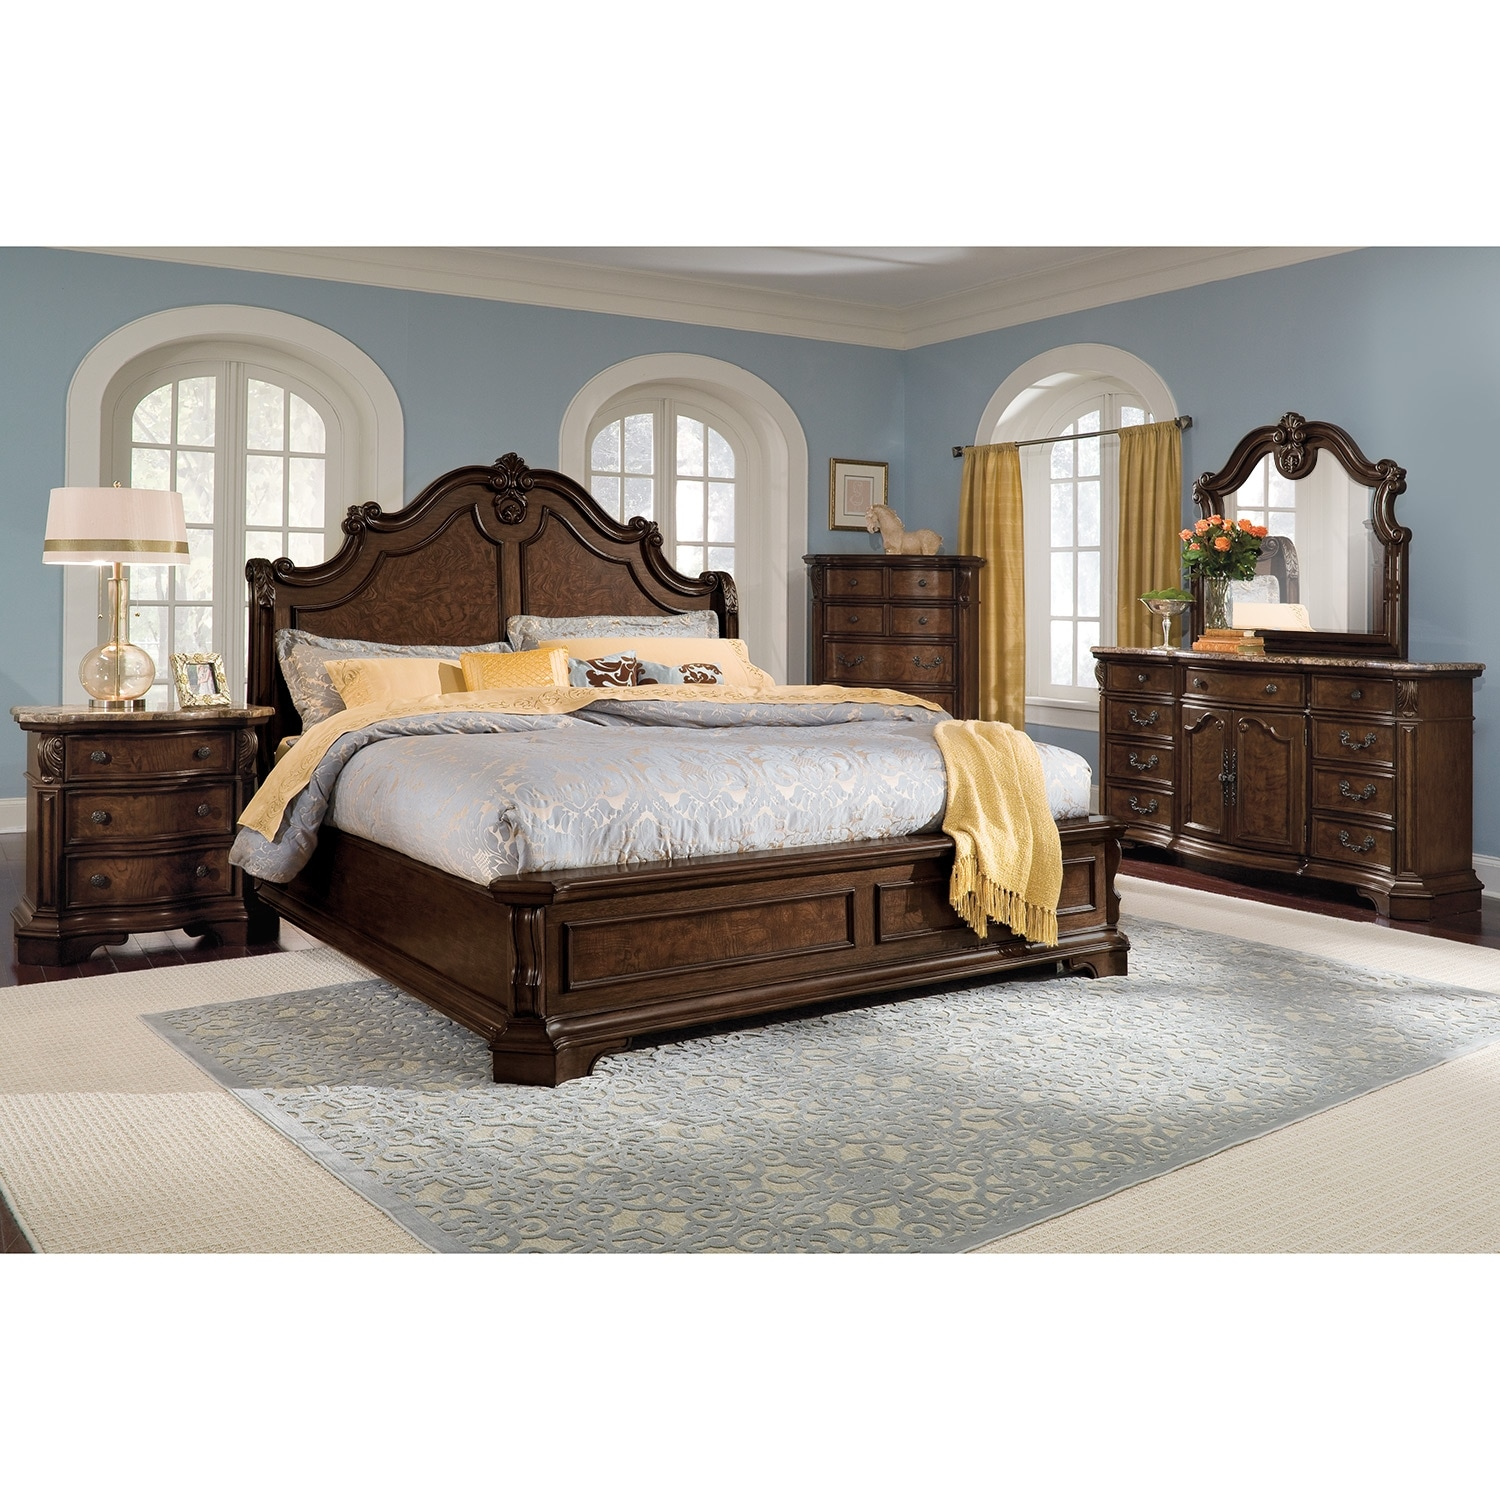 Monticello pecan bedroom nightstand value city furniture for Where to get bedroom furniture